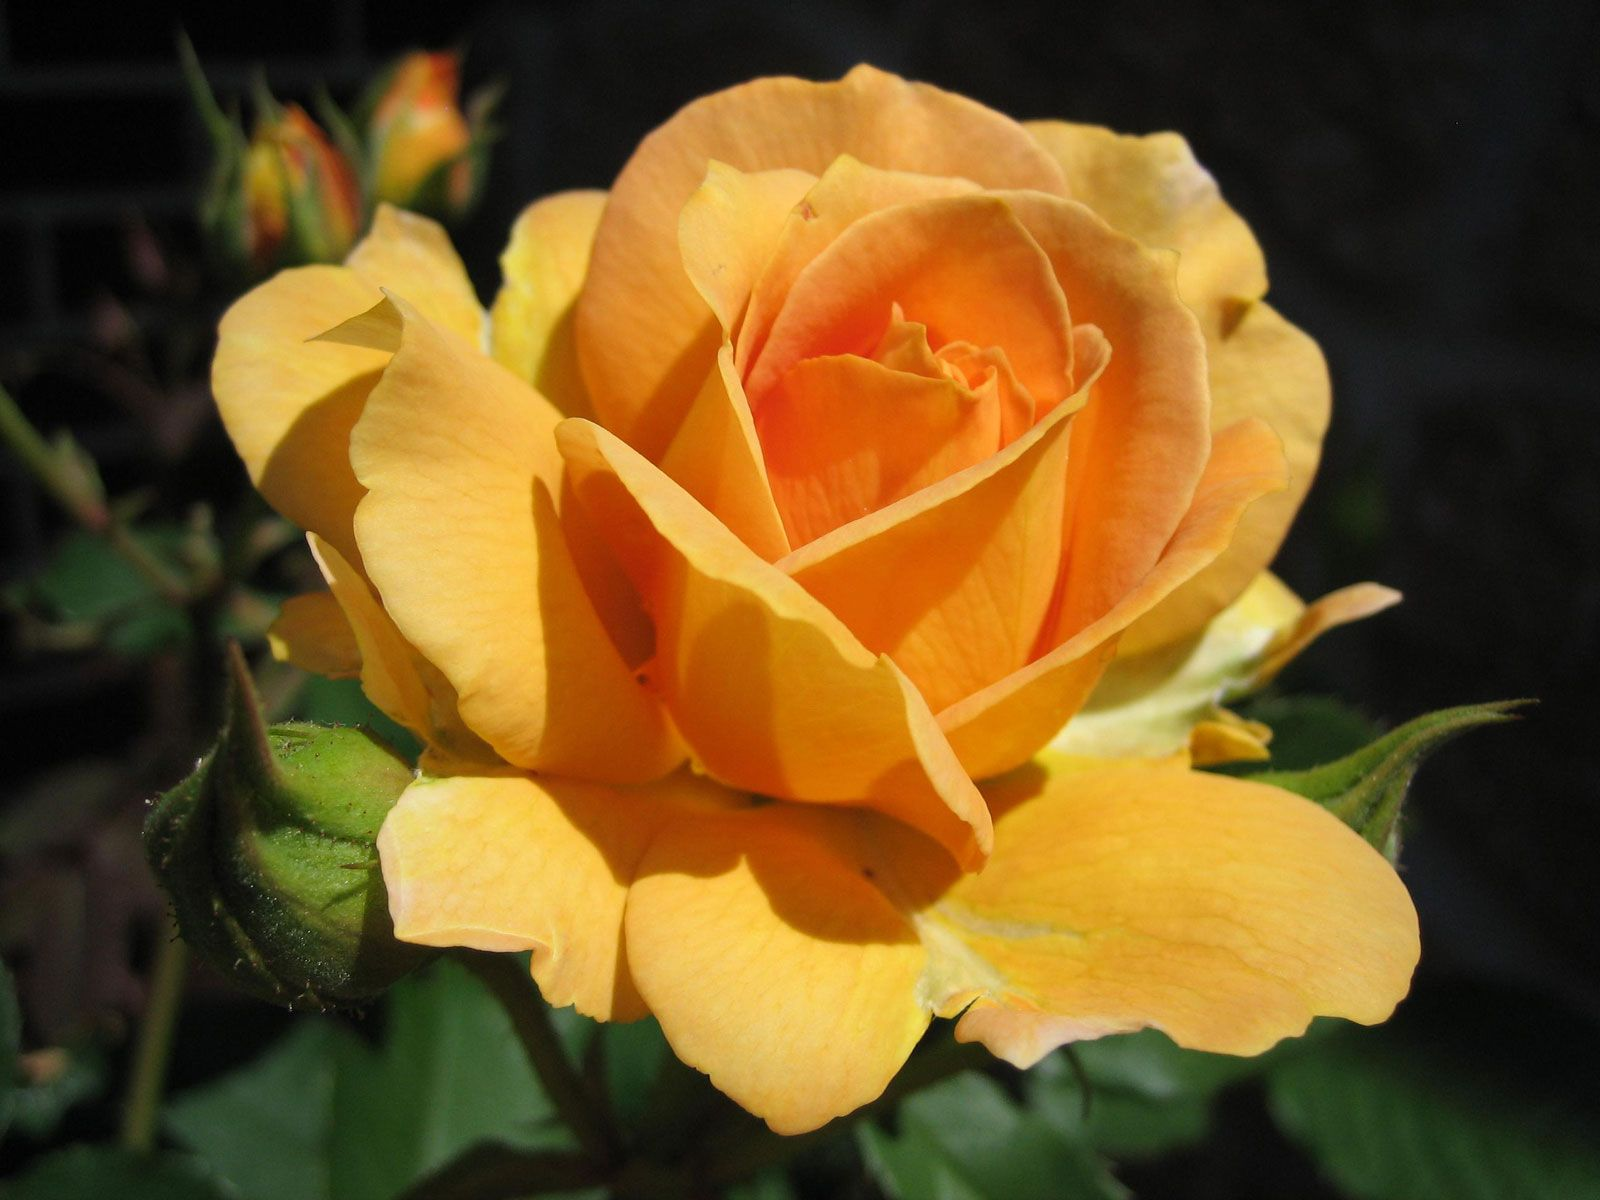 roses pictures | Ochre-yellow hybrid rose flower photo designed as free wallpaper, 1600 ...